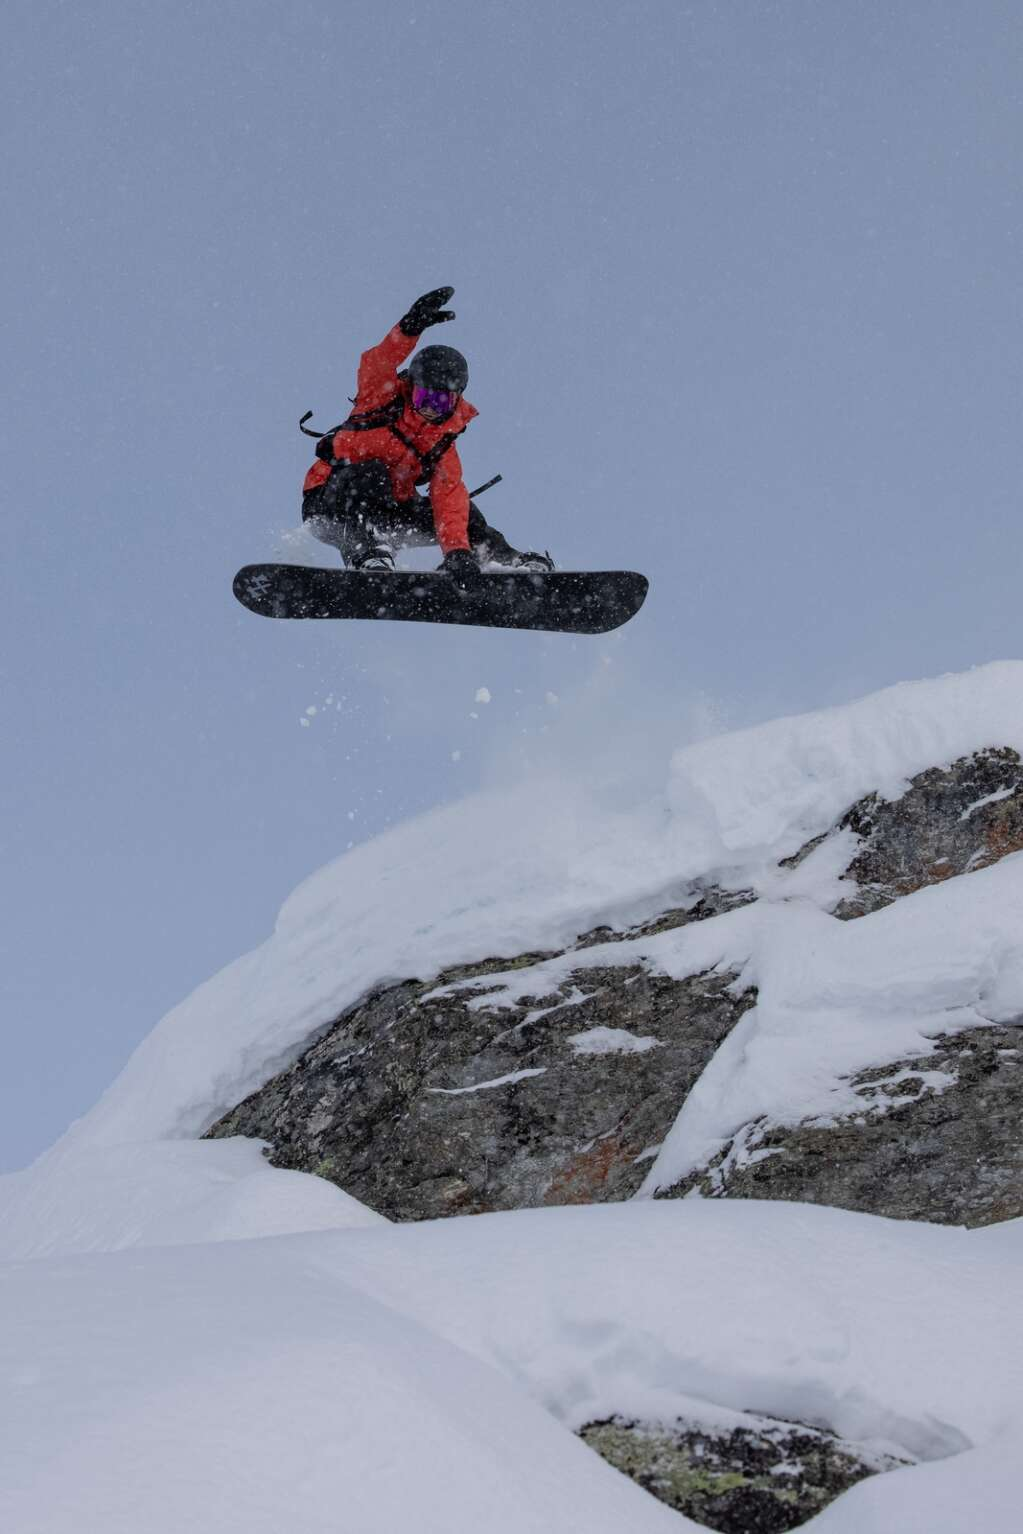 Big-mountain snowboarder Michael Mawn rides at the Engadin Snow 2021 event in Silvaplana, Switzerland   Photo by Marc Weiler Photography & Film